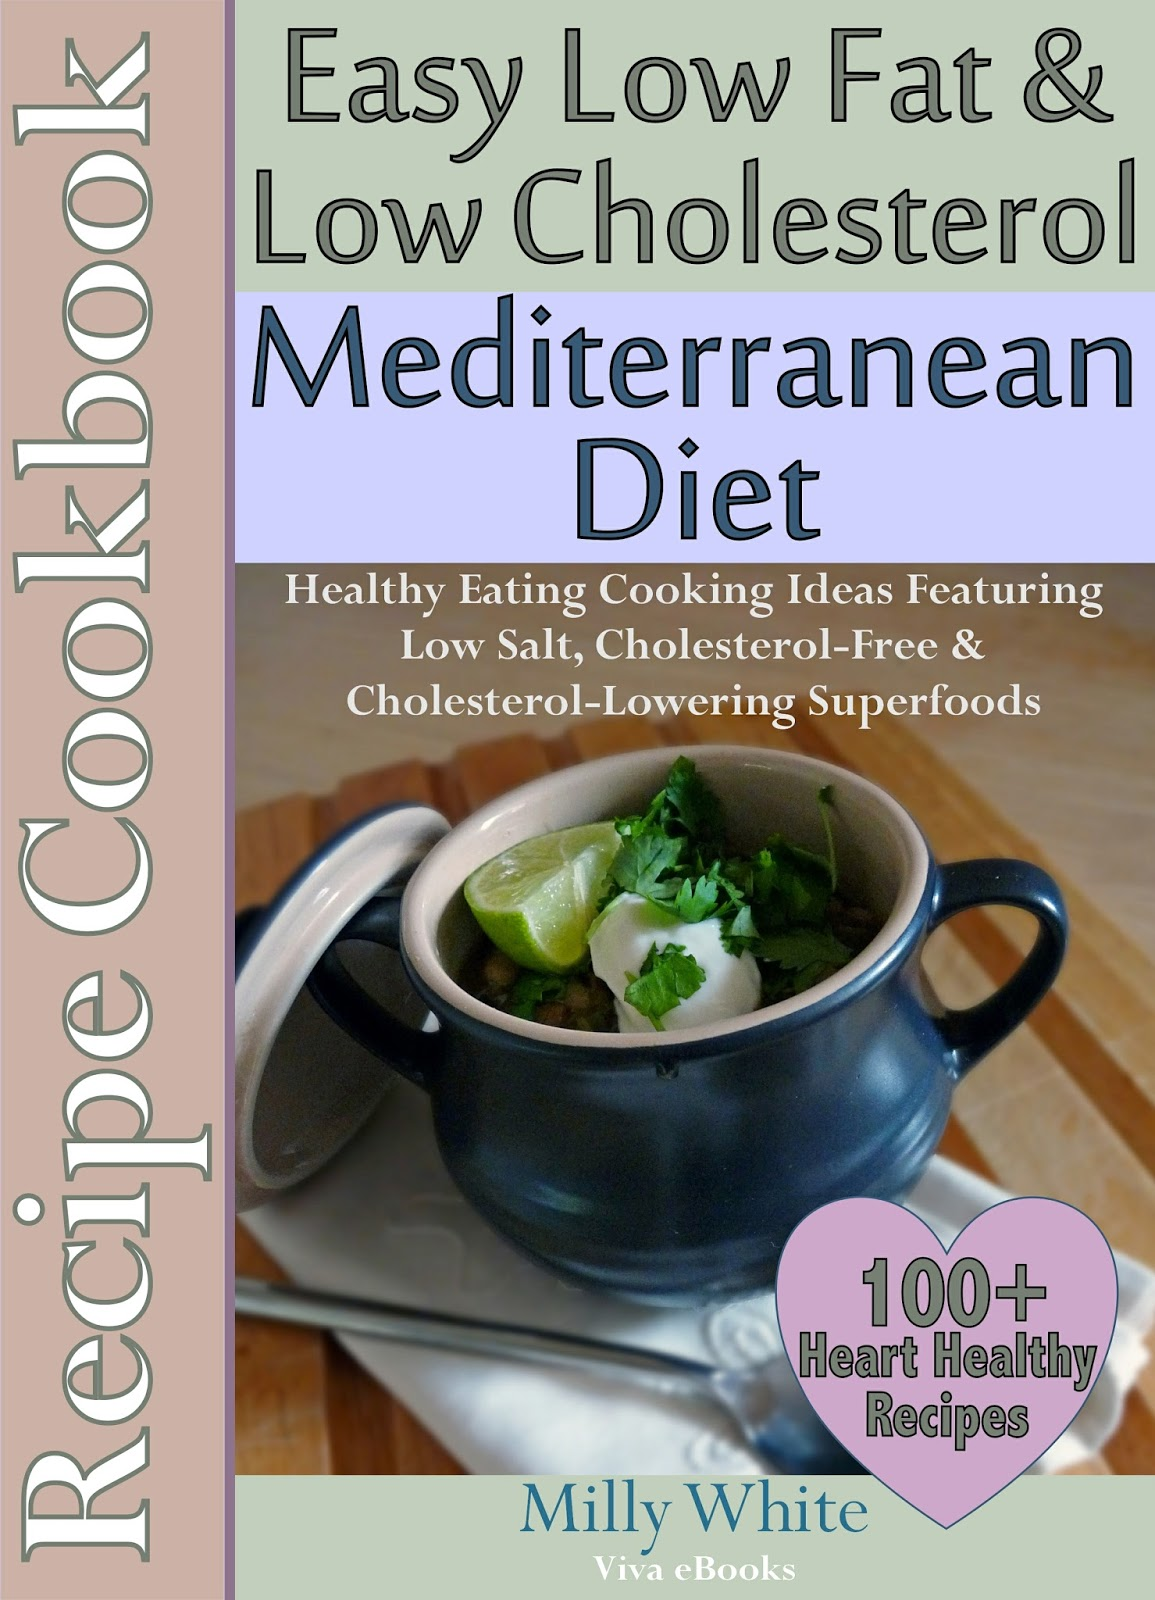 Easy Low Fat, Low Cholesterol Mediterranean Diet Recipe Cookbook